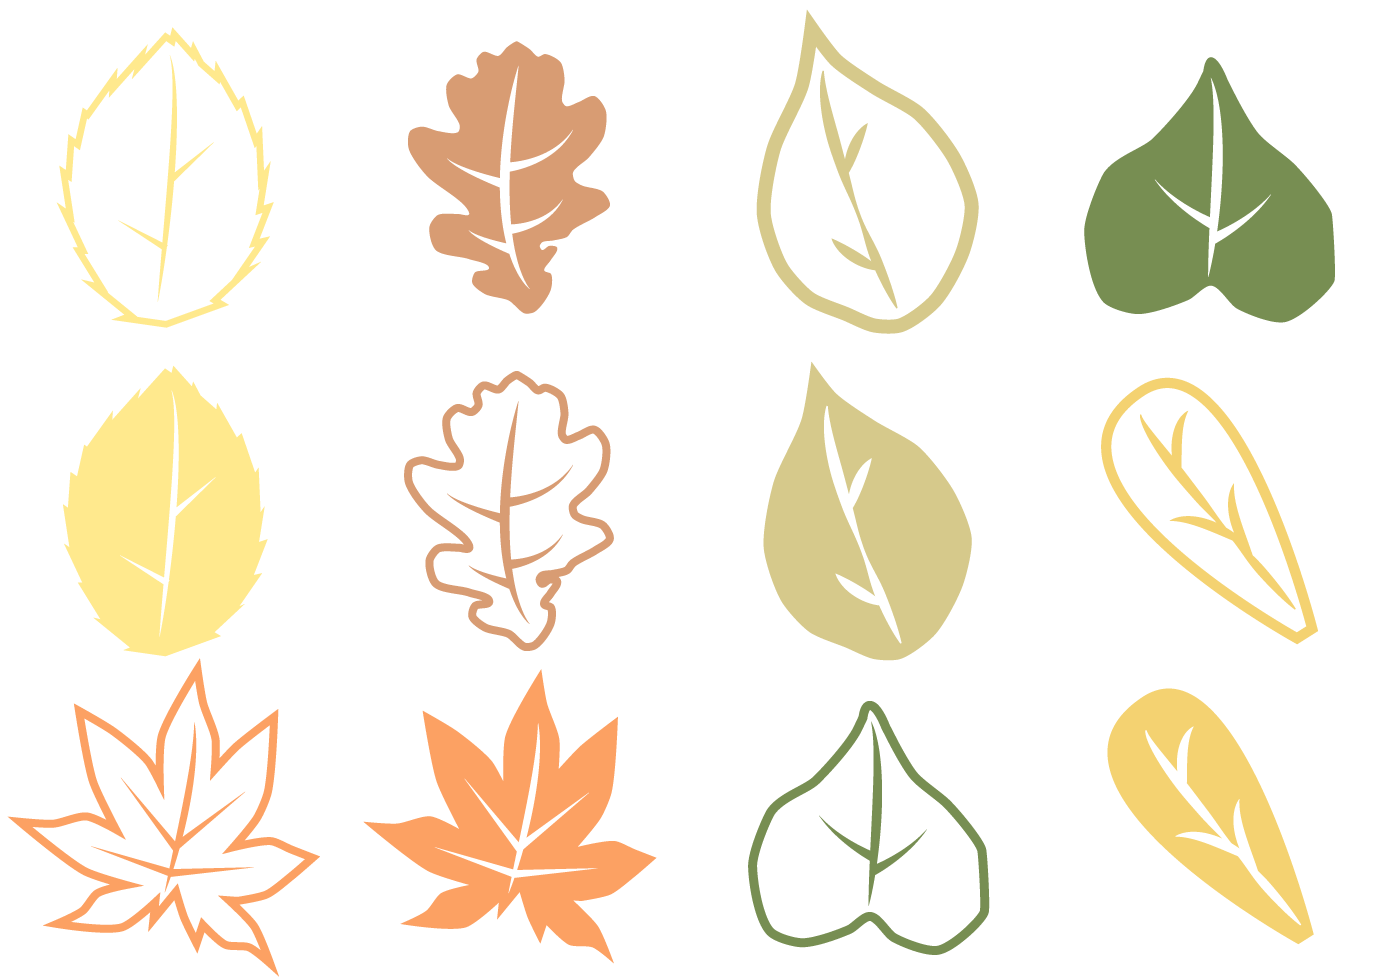 free autumn leaves vector download free vector art Black Tree Clip Art Palm Leaves Leaf Art Palm Tree